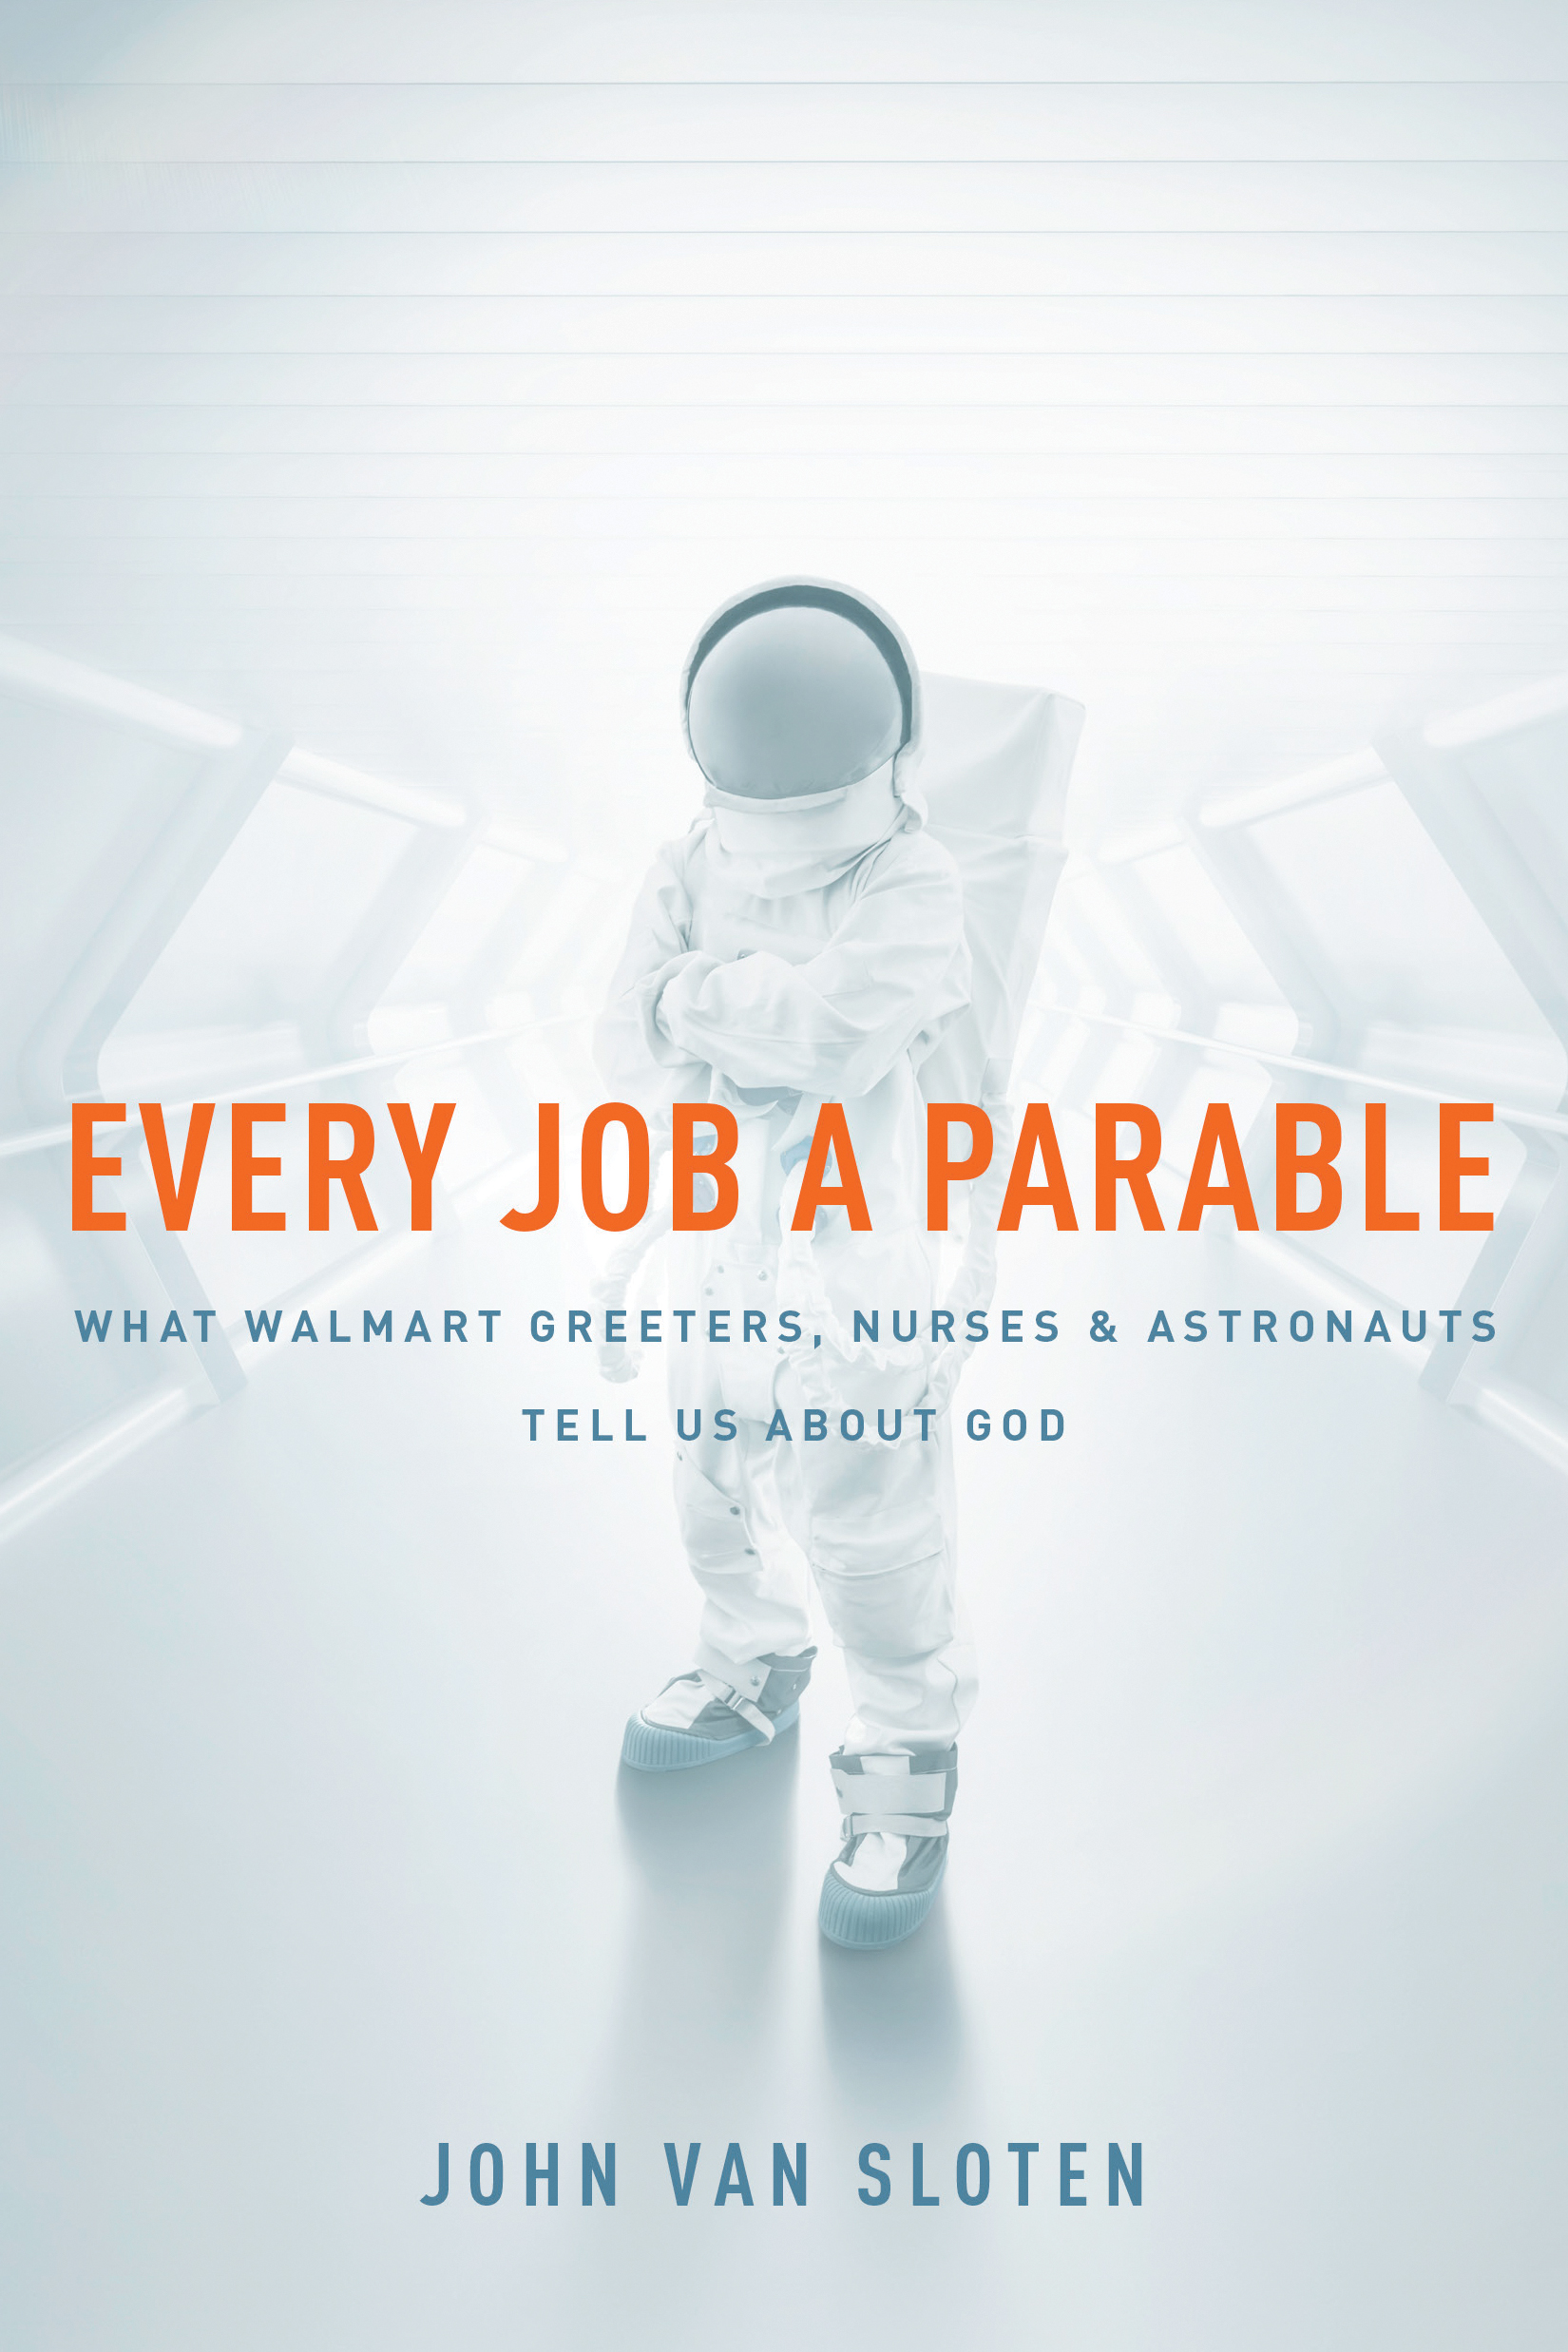 Cover of Every Job a Parable, by John Van Sloten